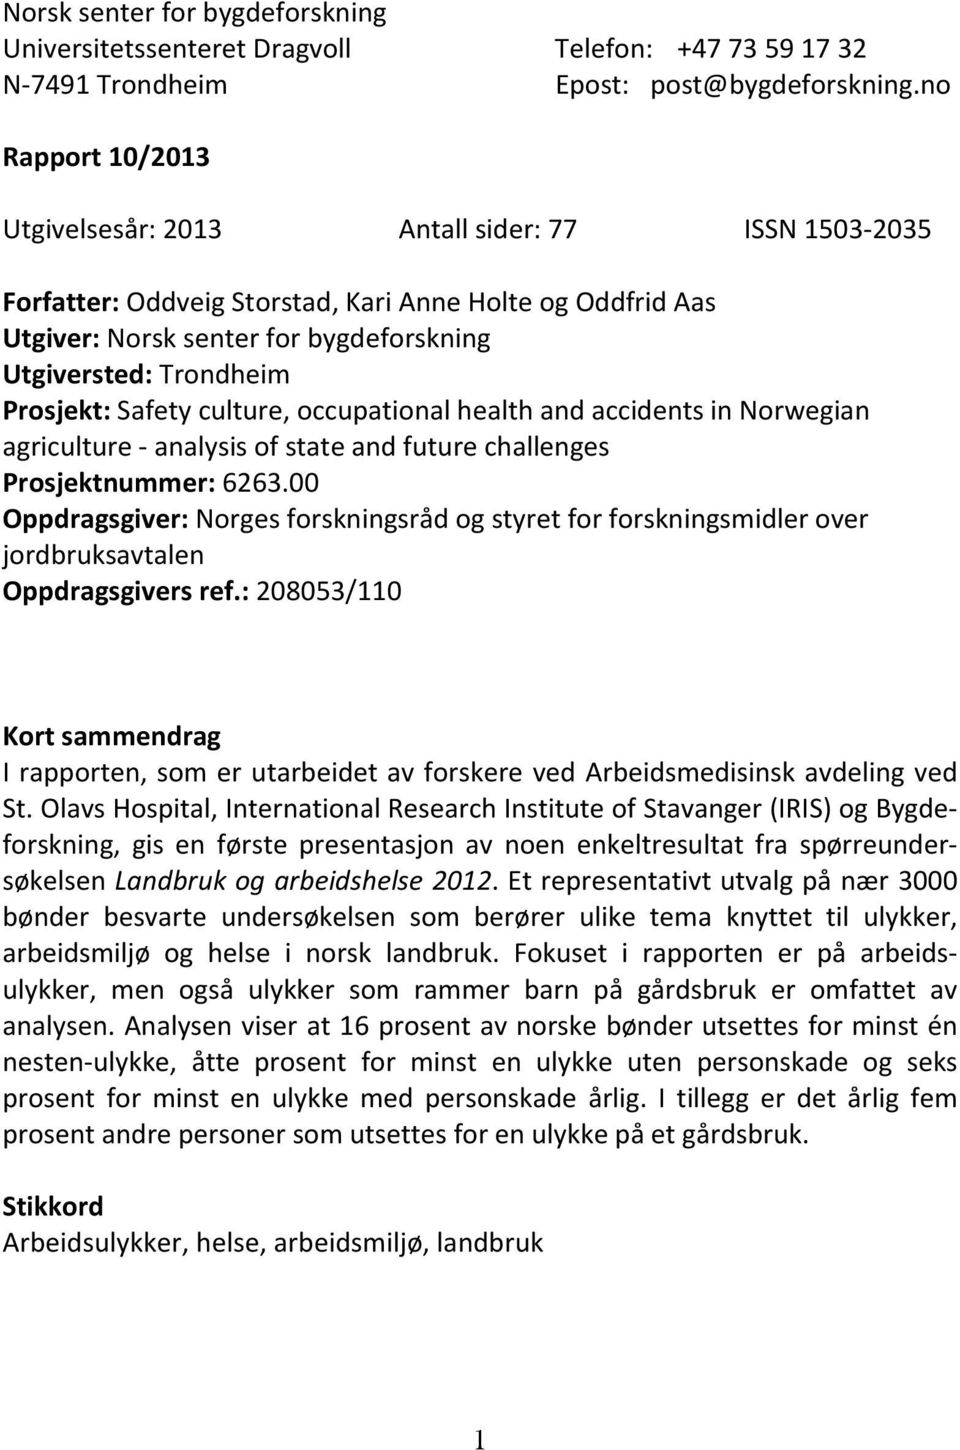 Prosjekt: Safety culture, occupational health and accidents in Norwegian agriculture - analysis of state and future challenges Prosjektnummer: 6263.